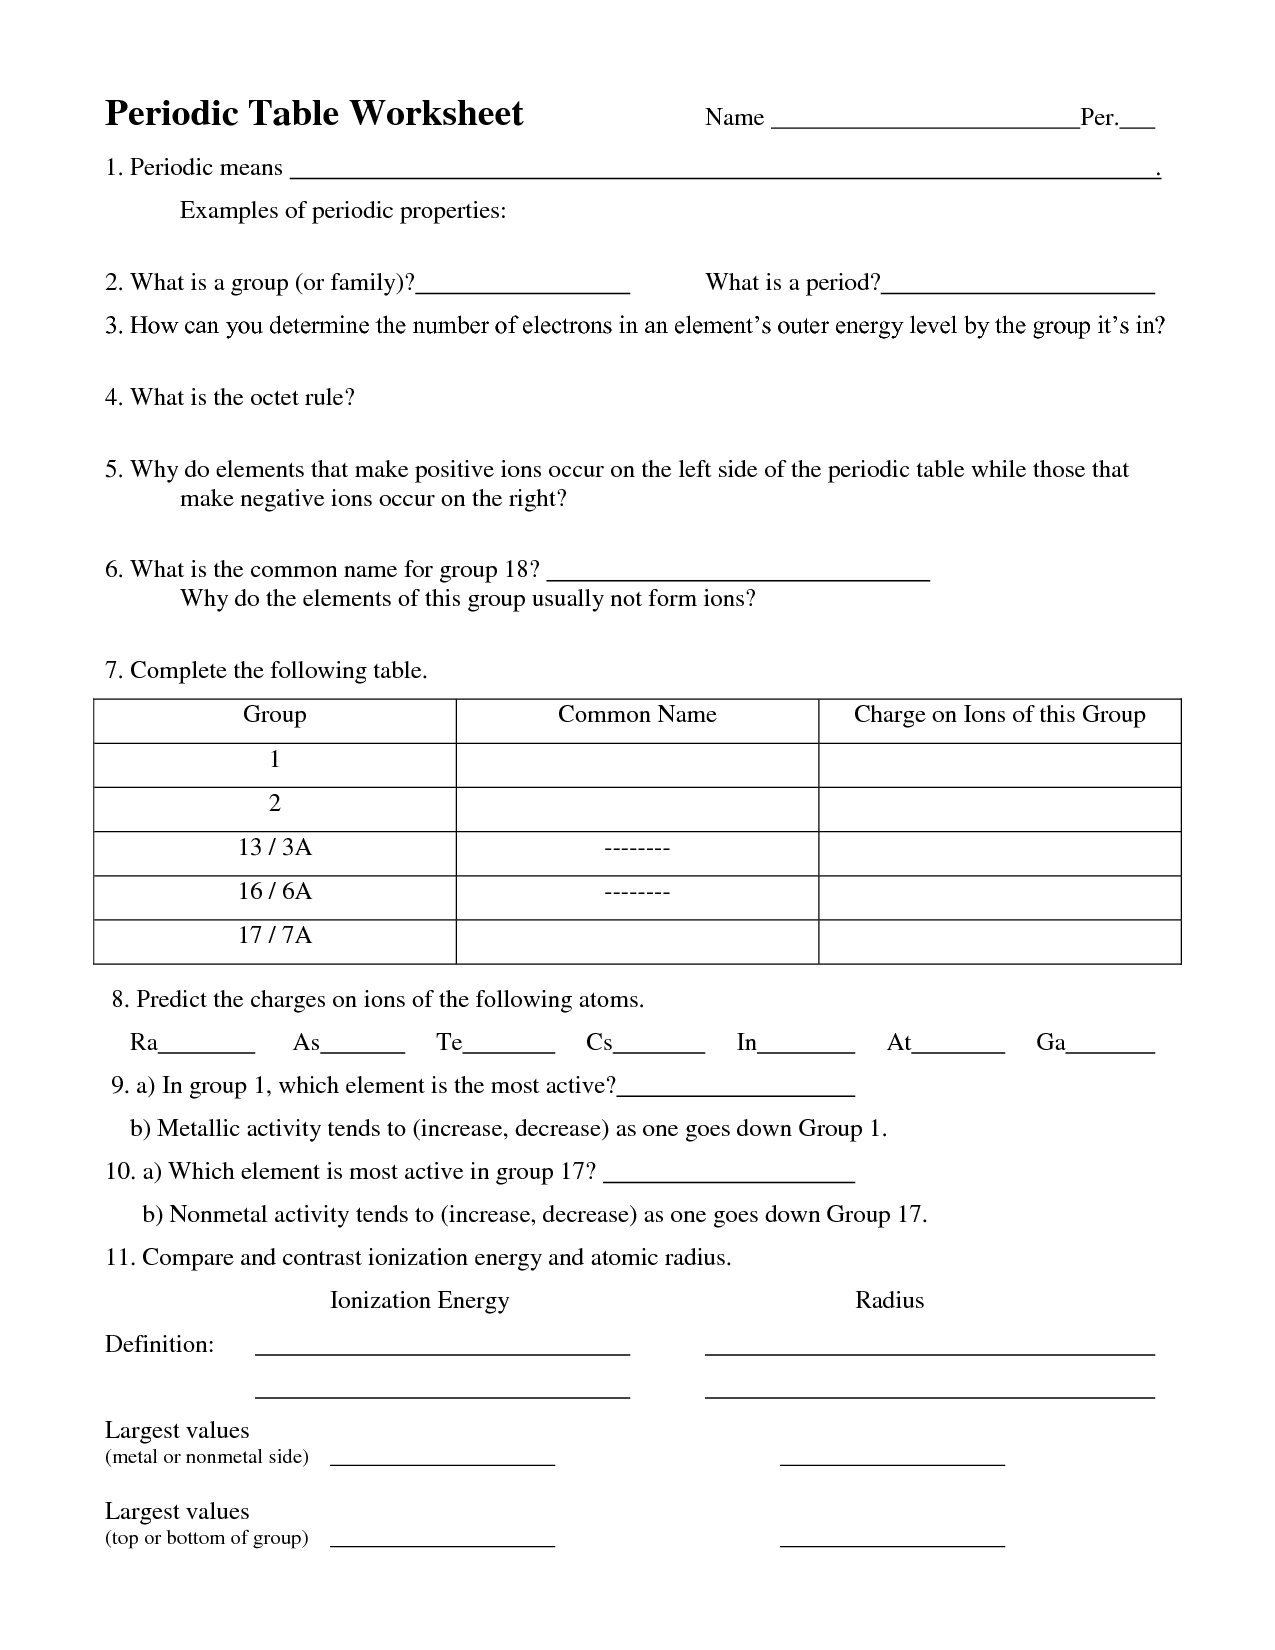 Properties Of Atoms And The Periodic Table Worksheet Answers The